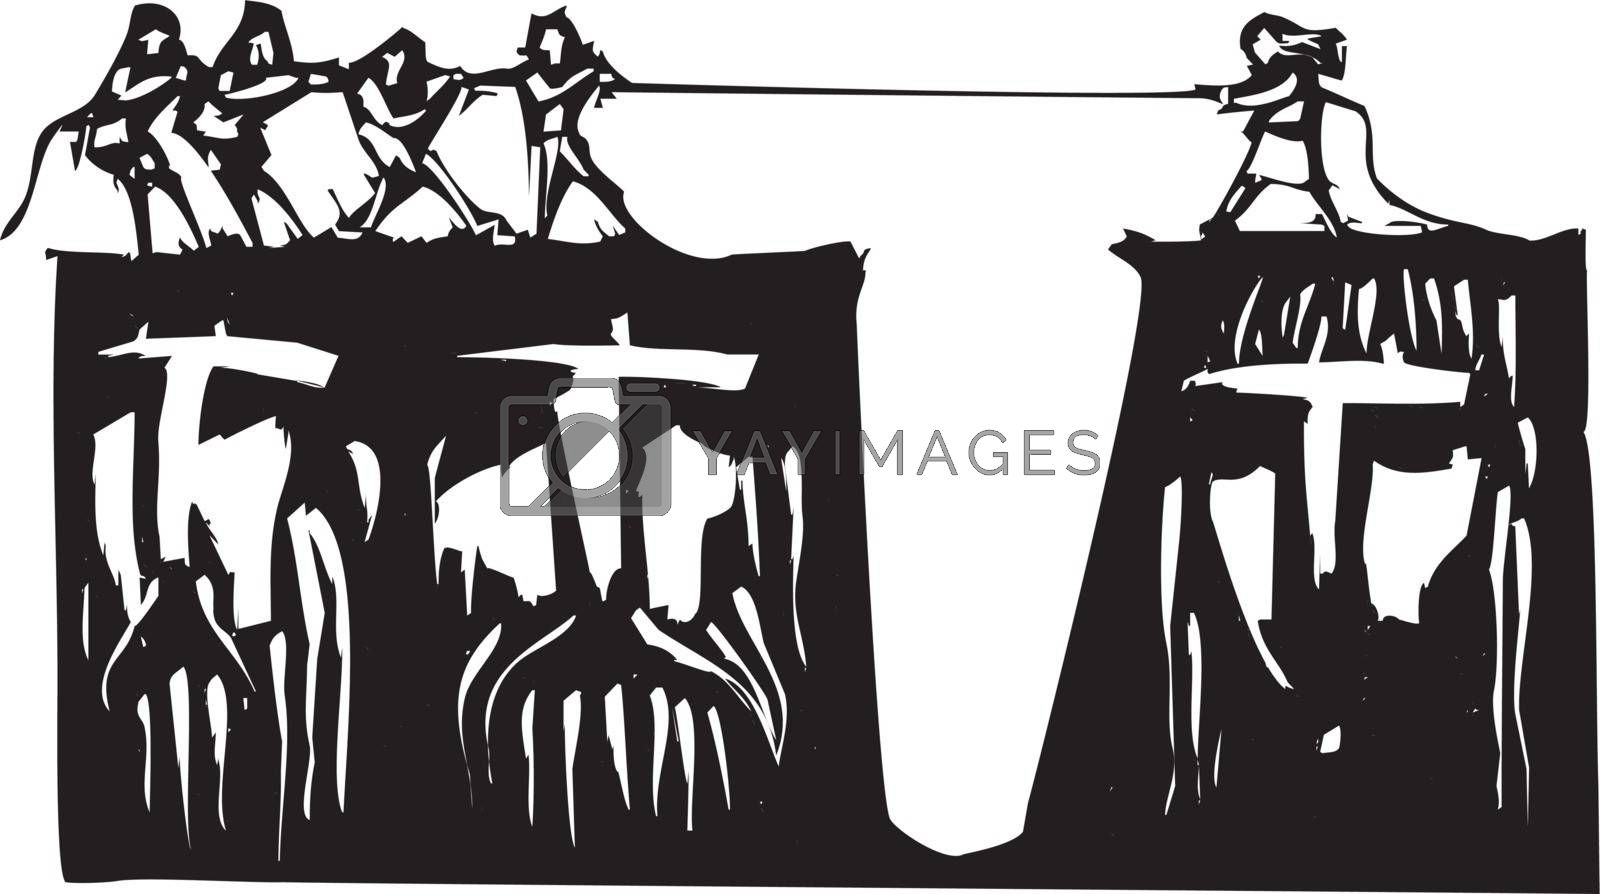 Men and and woman play tug a war over cliffs with gender based faces.